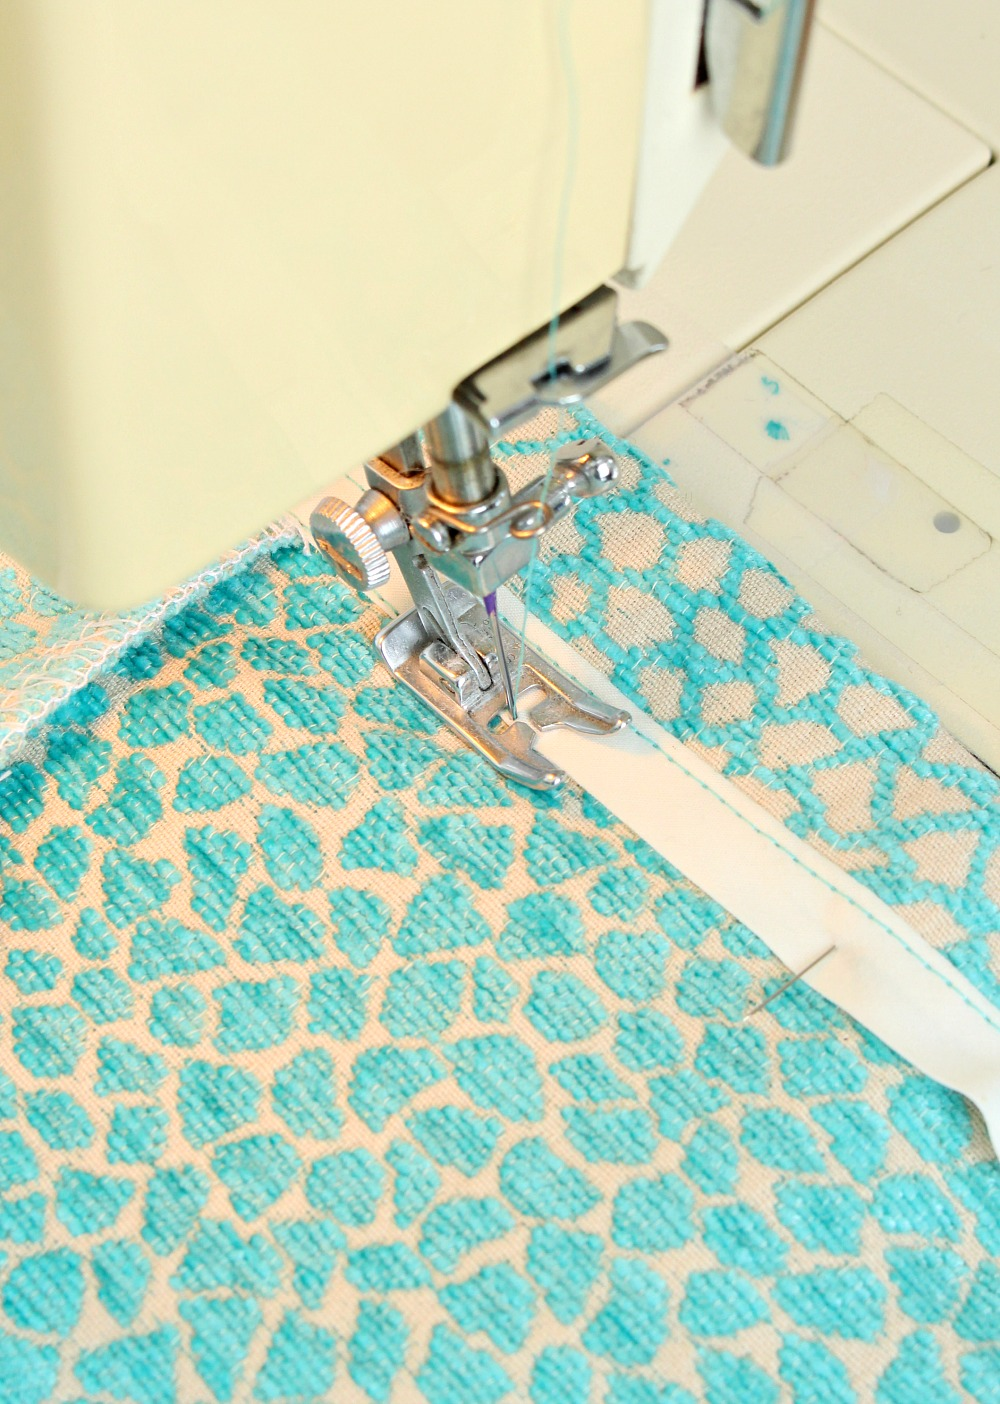 How to Sew a Channel for Drawstring